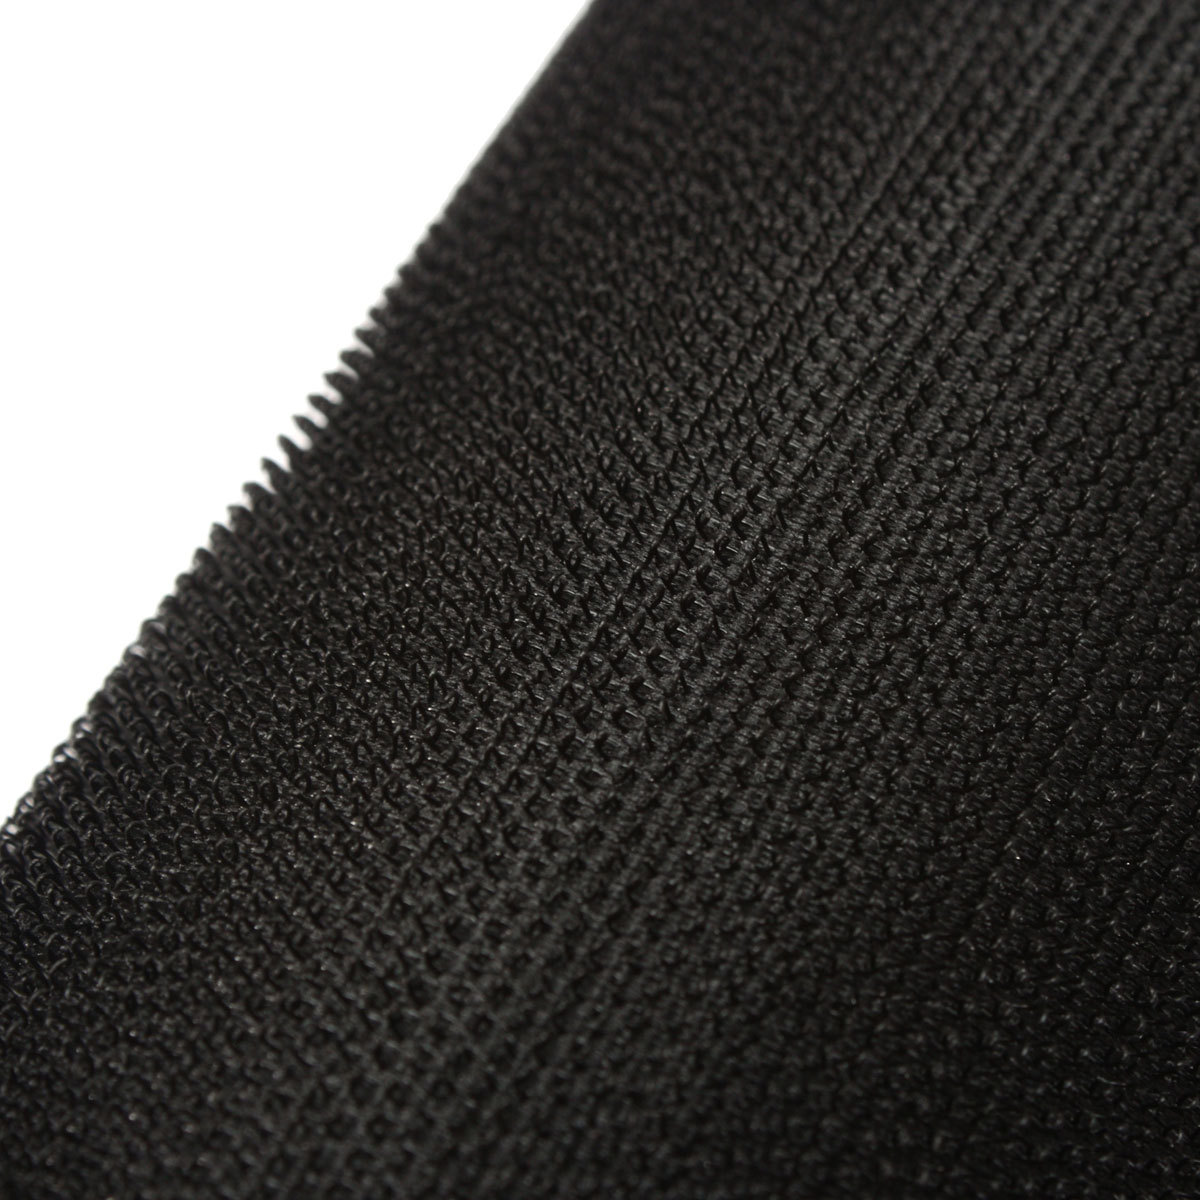 cable tray cover for carpet nylon wire cloth glue 2m length 100mm width ebay. Black Bedroom Furniture Sets. Home Design Ideas